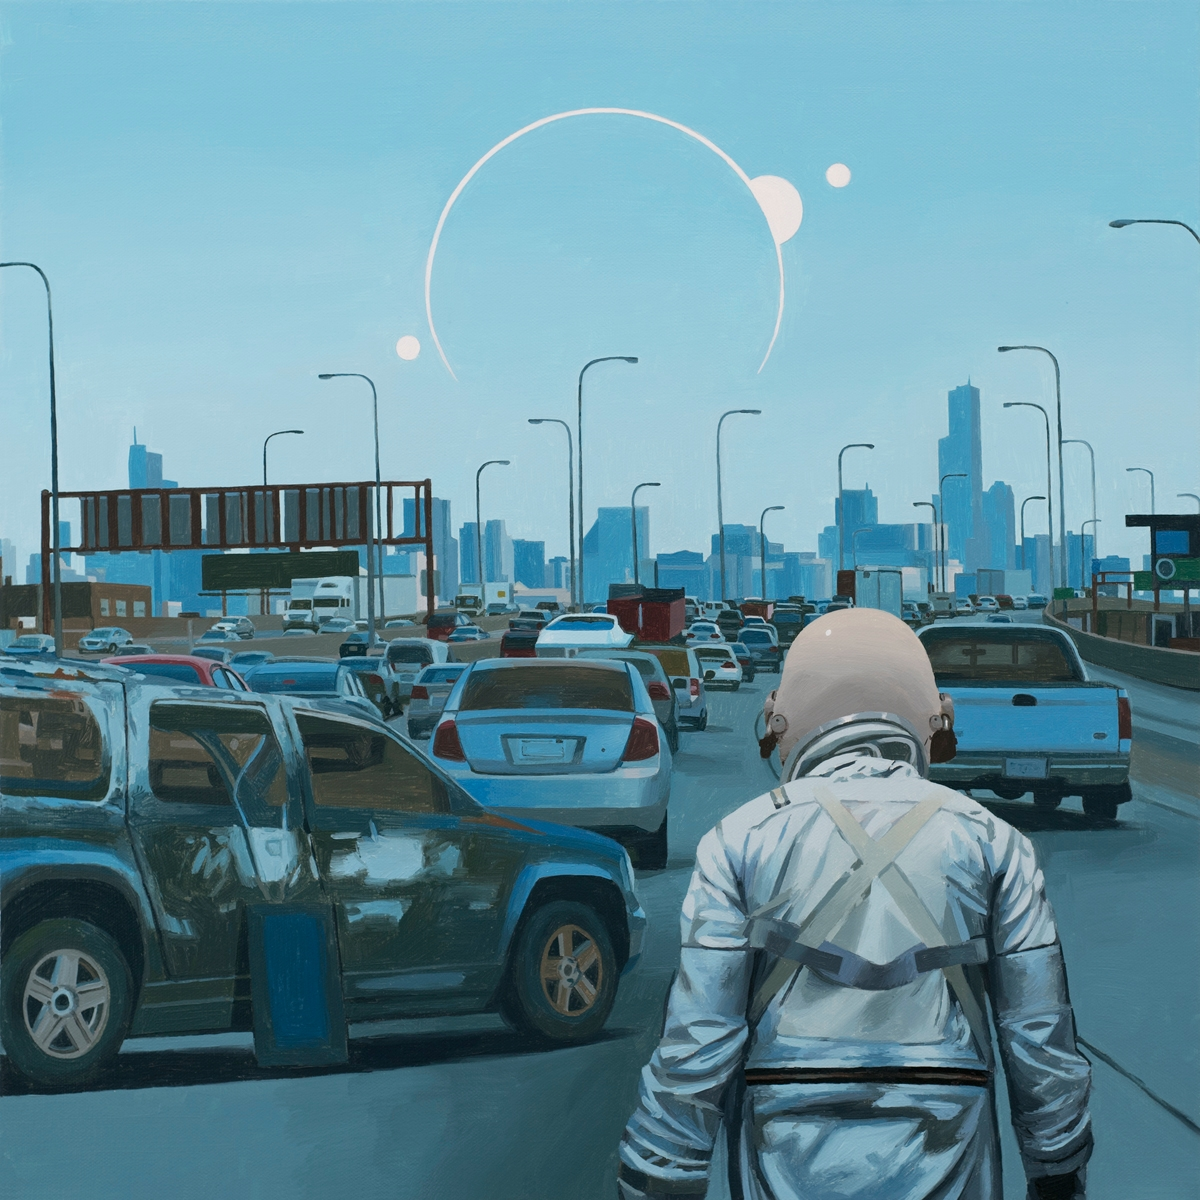 Excited part 'JUXTAPOZED,' grou - scottlistfield | ello